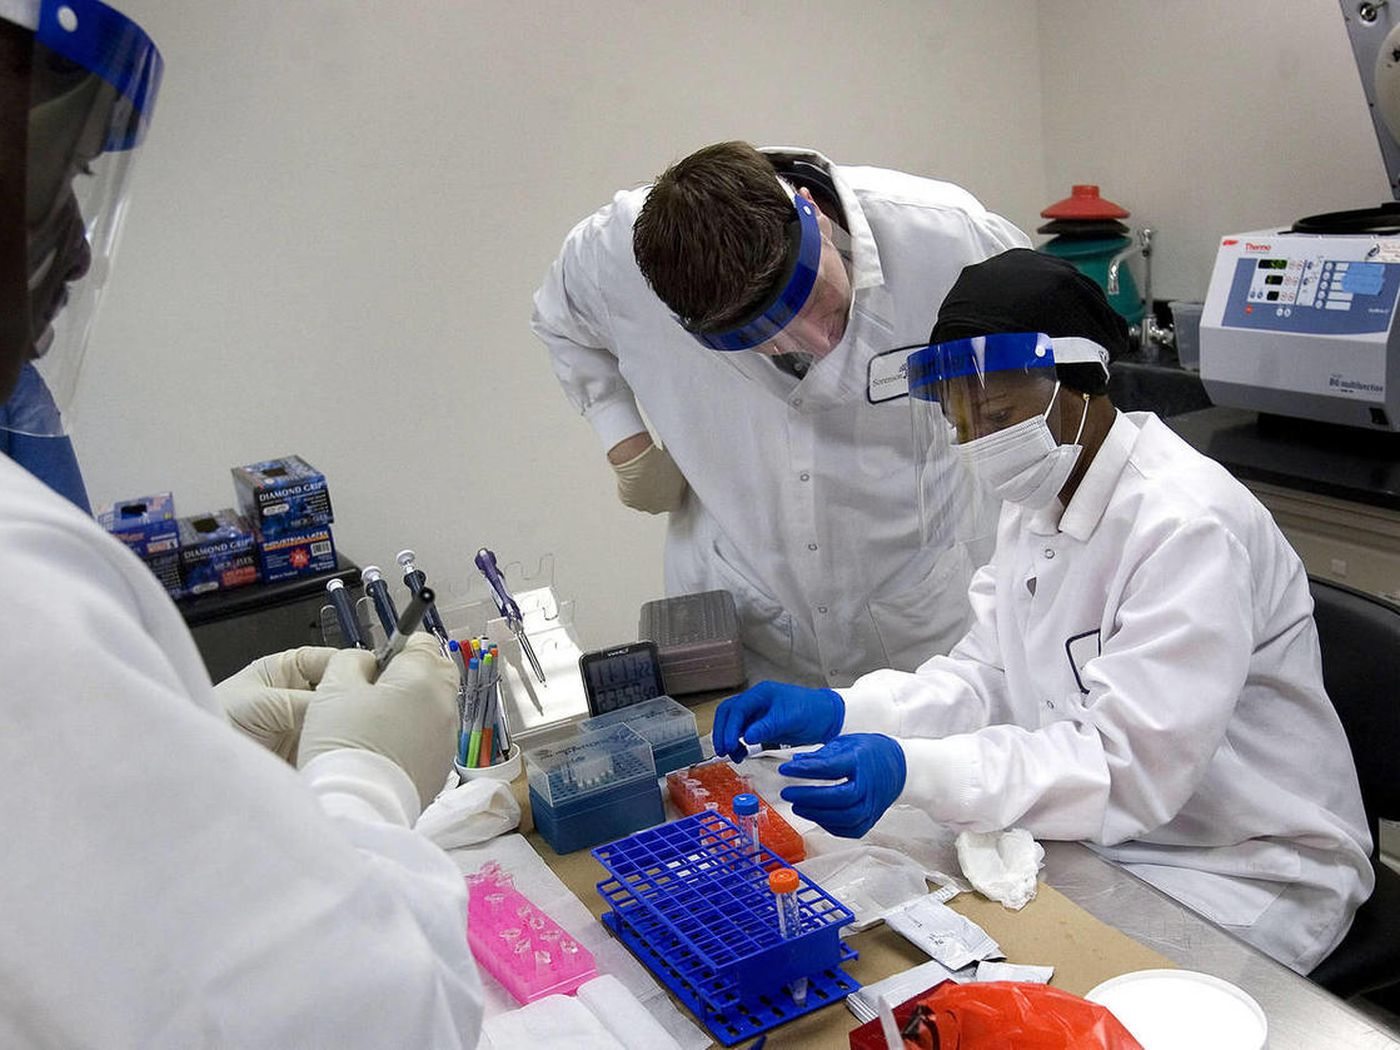 Real Forensic Scientists Shake Their Heads At Tv Csi Counterparts Deseret News